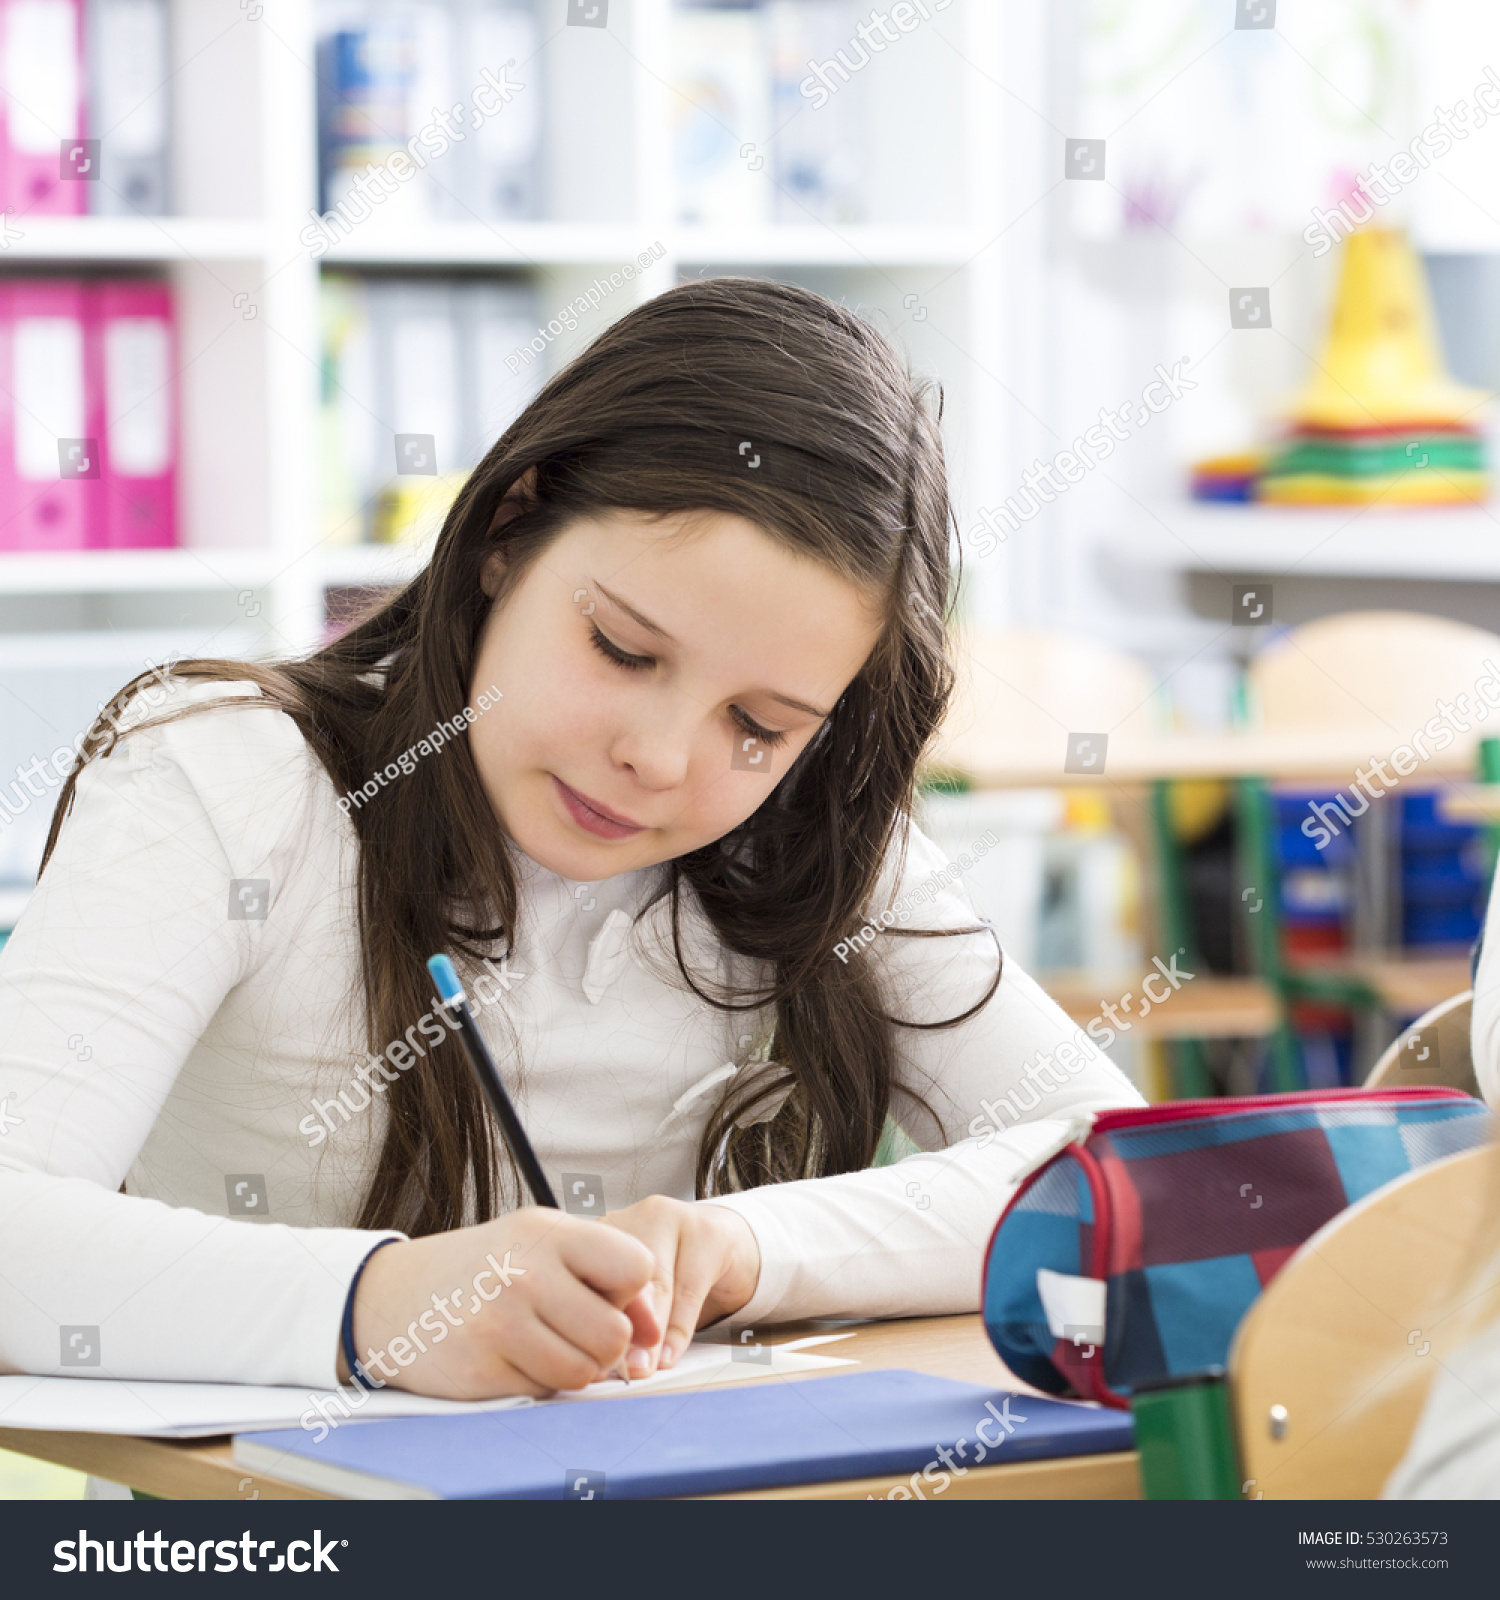 young girl writing essay during lesson stock photo  young girl writing an essay during lesson in primary school